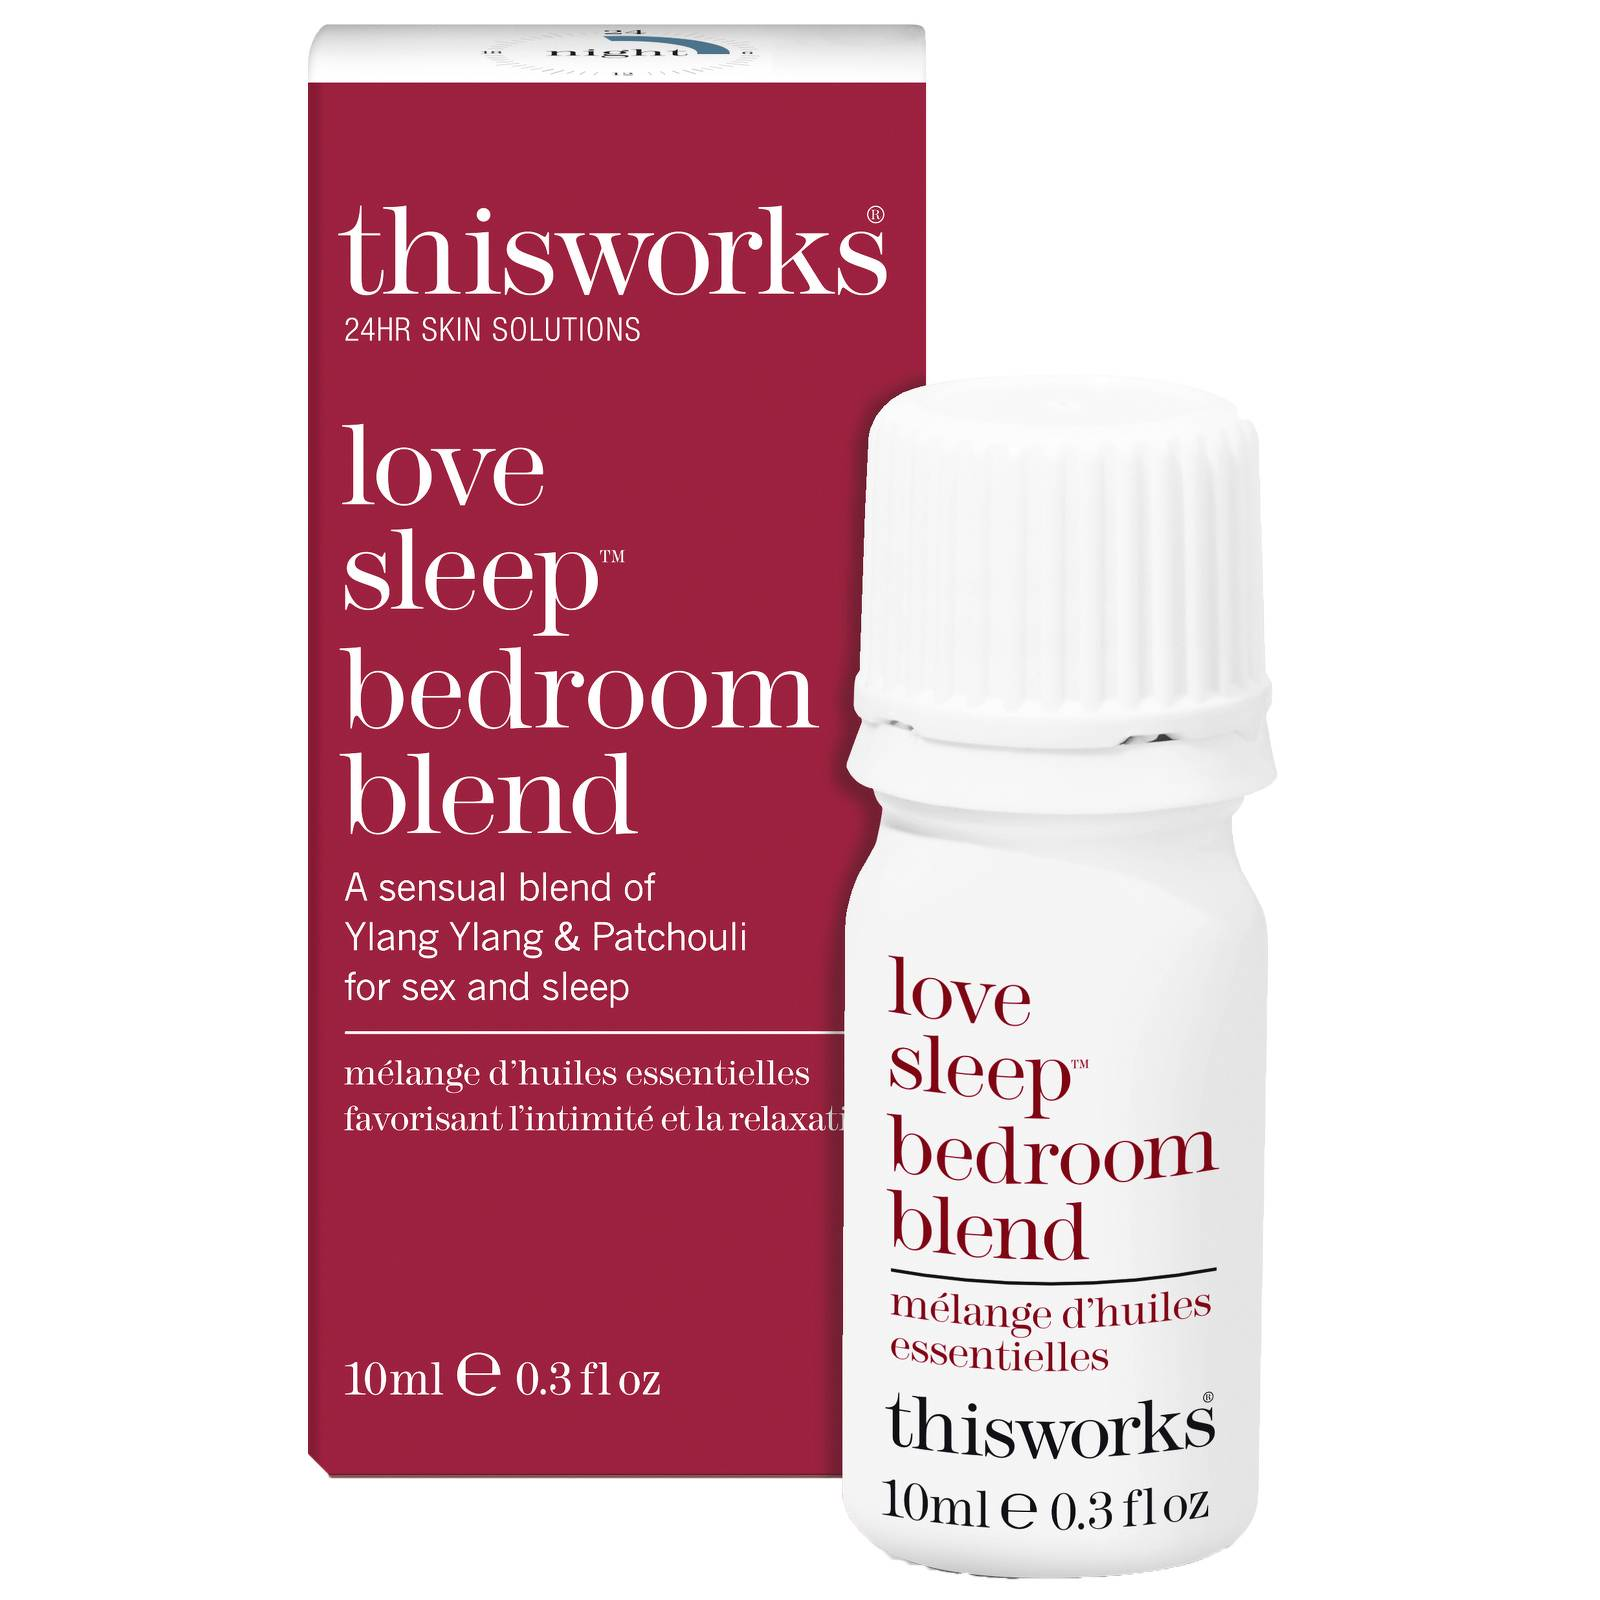 thisworks Sleep Amore Camera da letto Blend 10ml